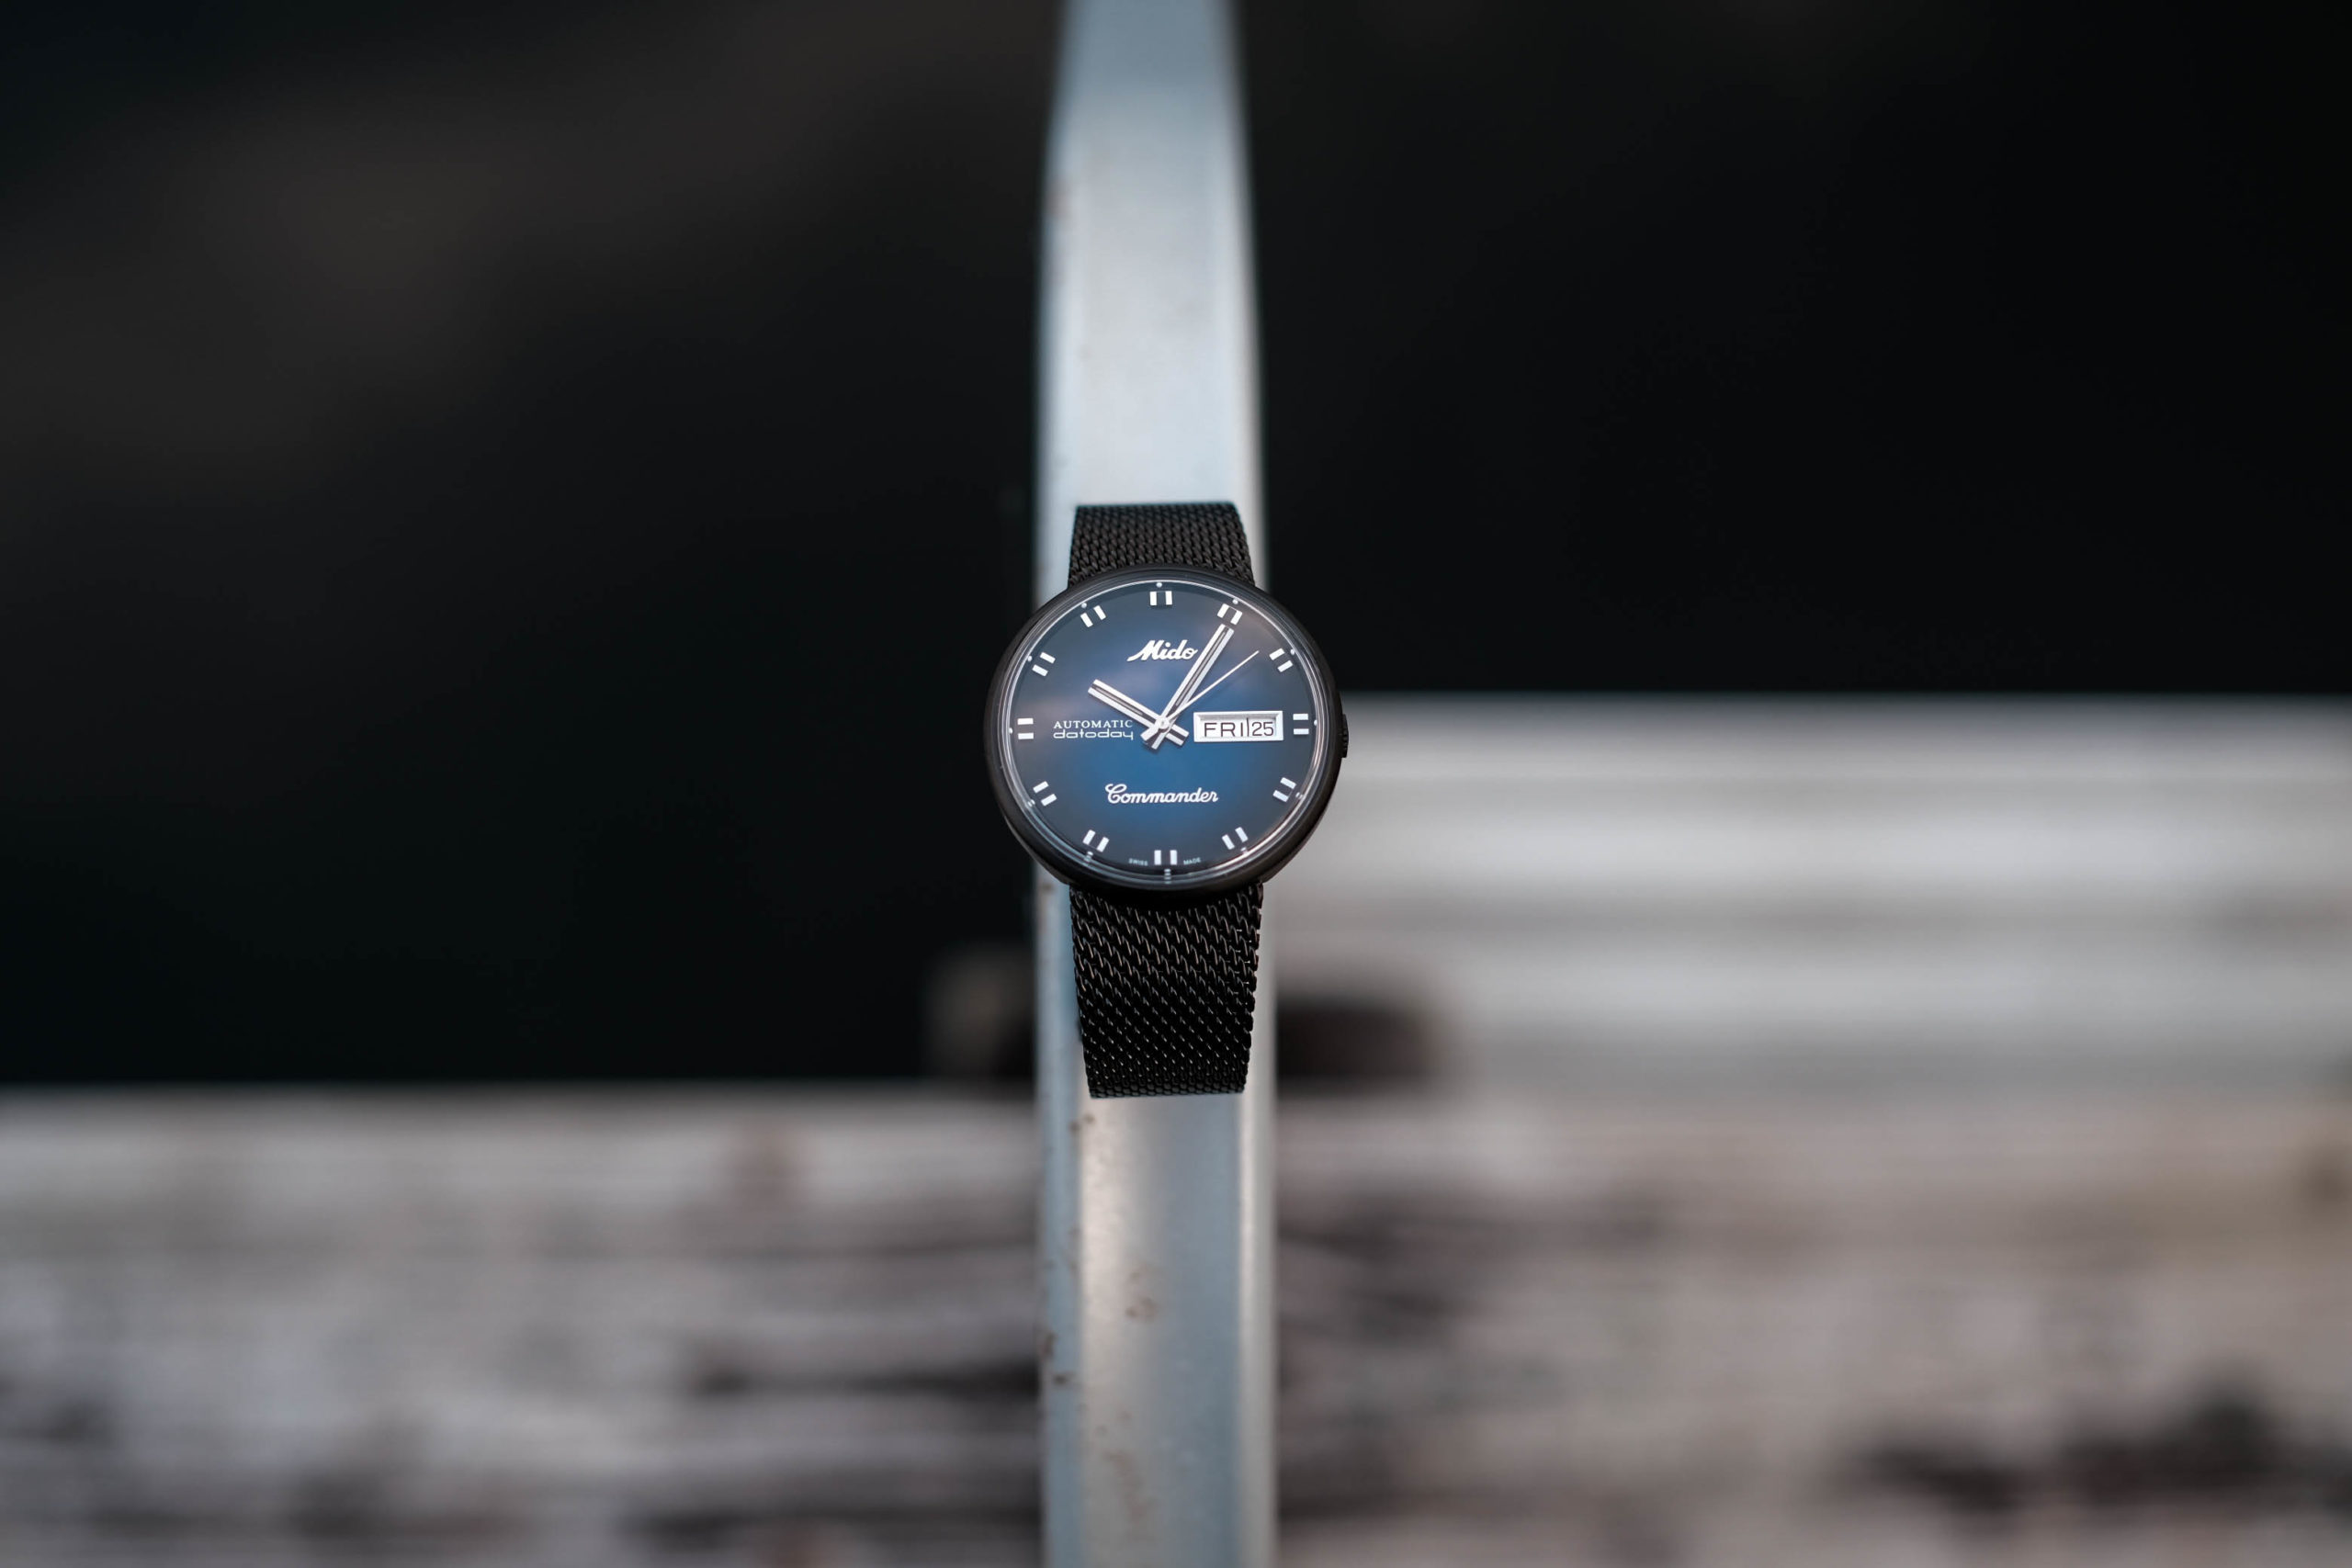 Mido Commander Blue Shade Watch Review